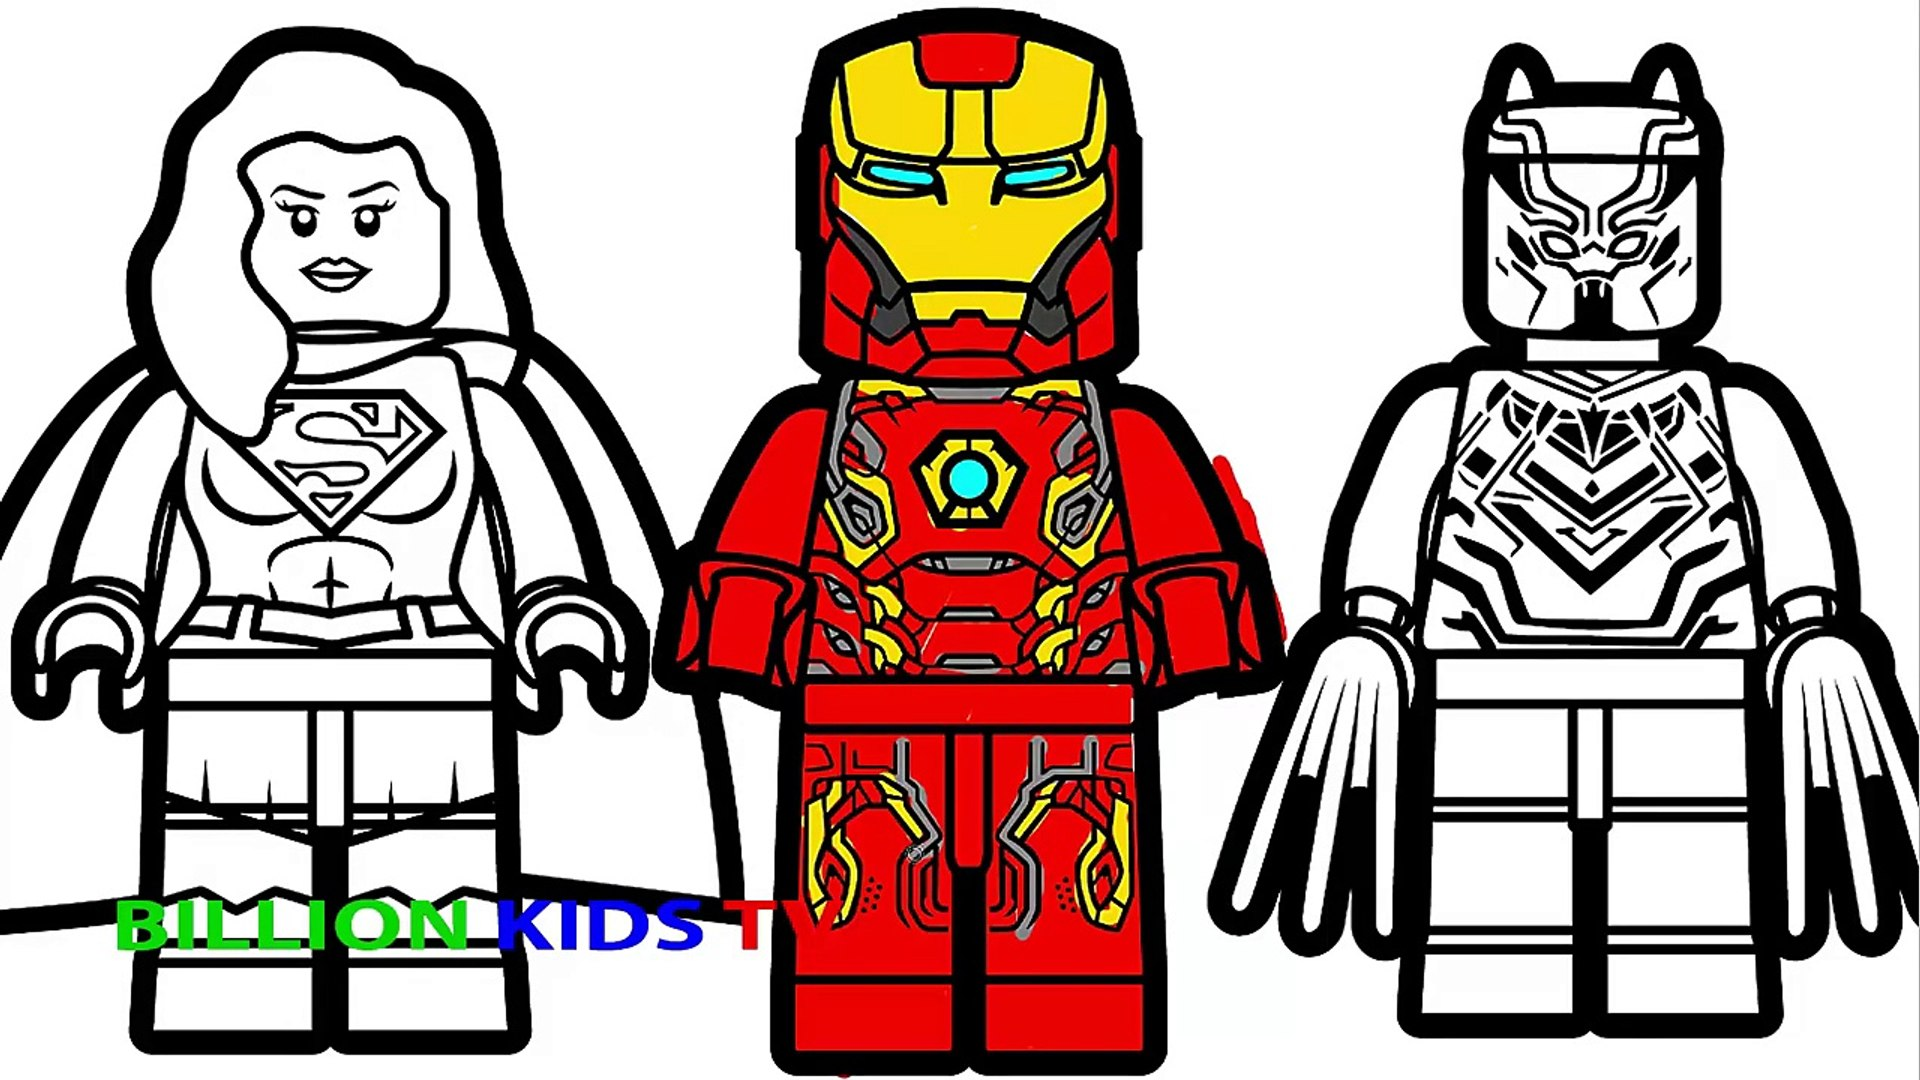 Lego Black Panther Coloring Page - Free Lego Coloring Pages ...   1080x1920